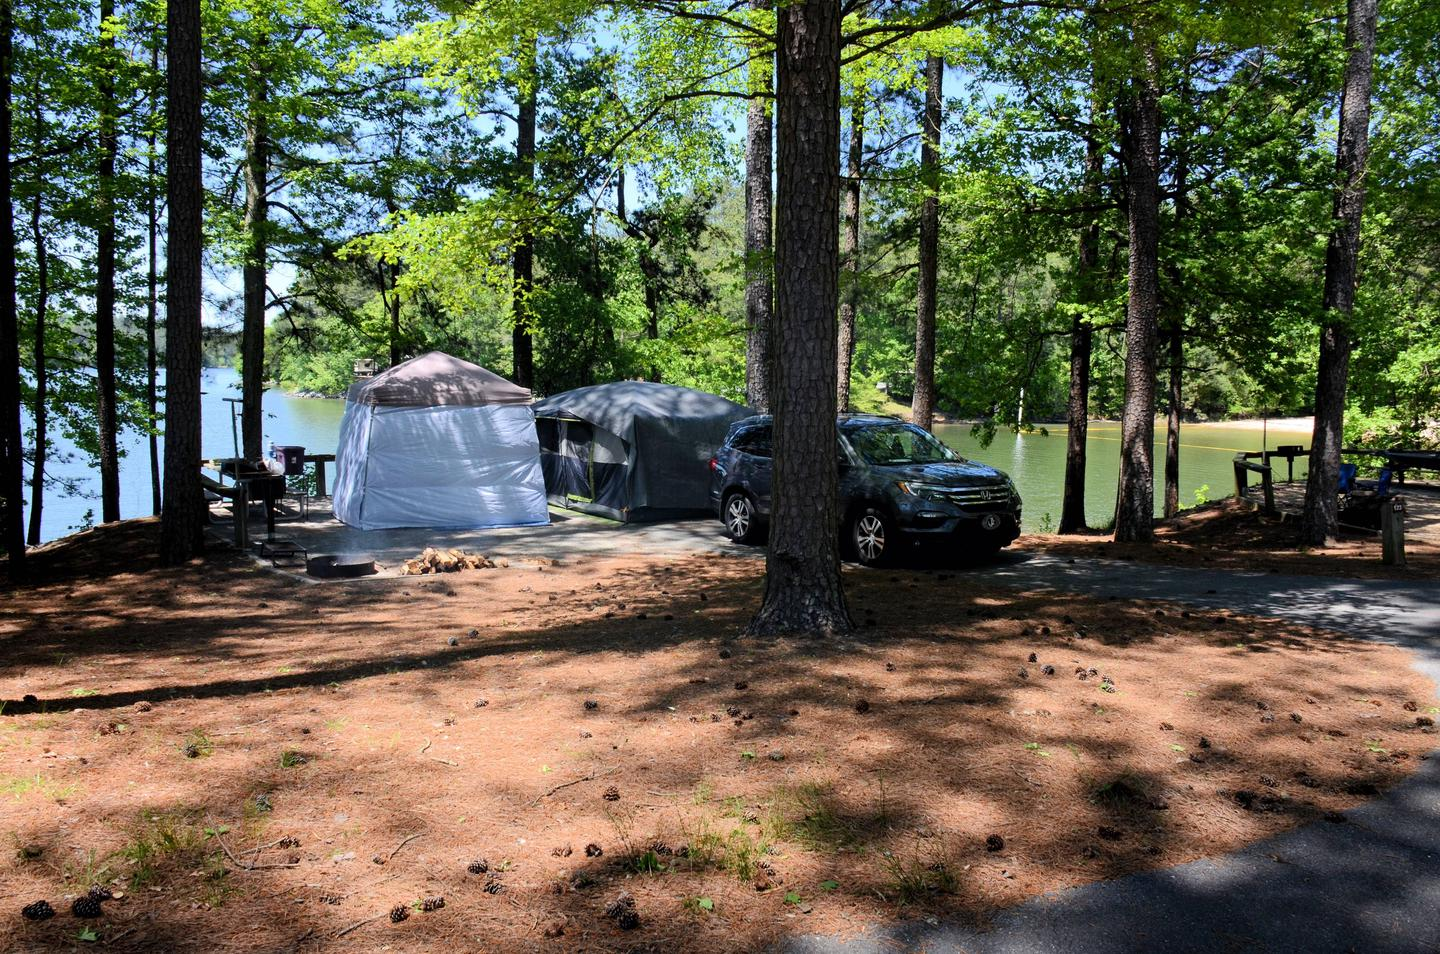 Campsite view, driveway slope, awning-side clearance.McKinney Campground, campsite 123.